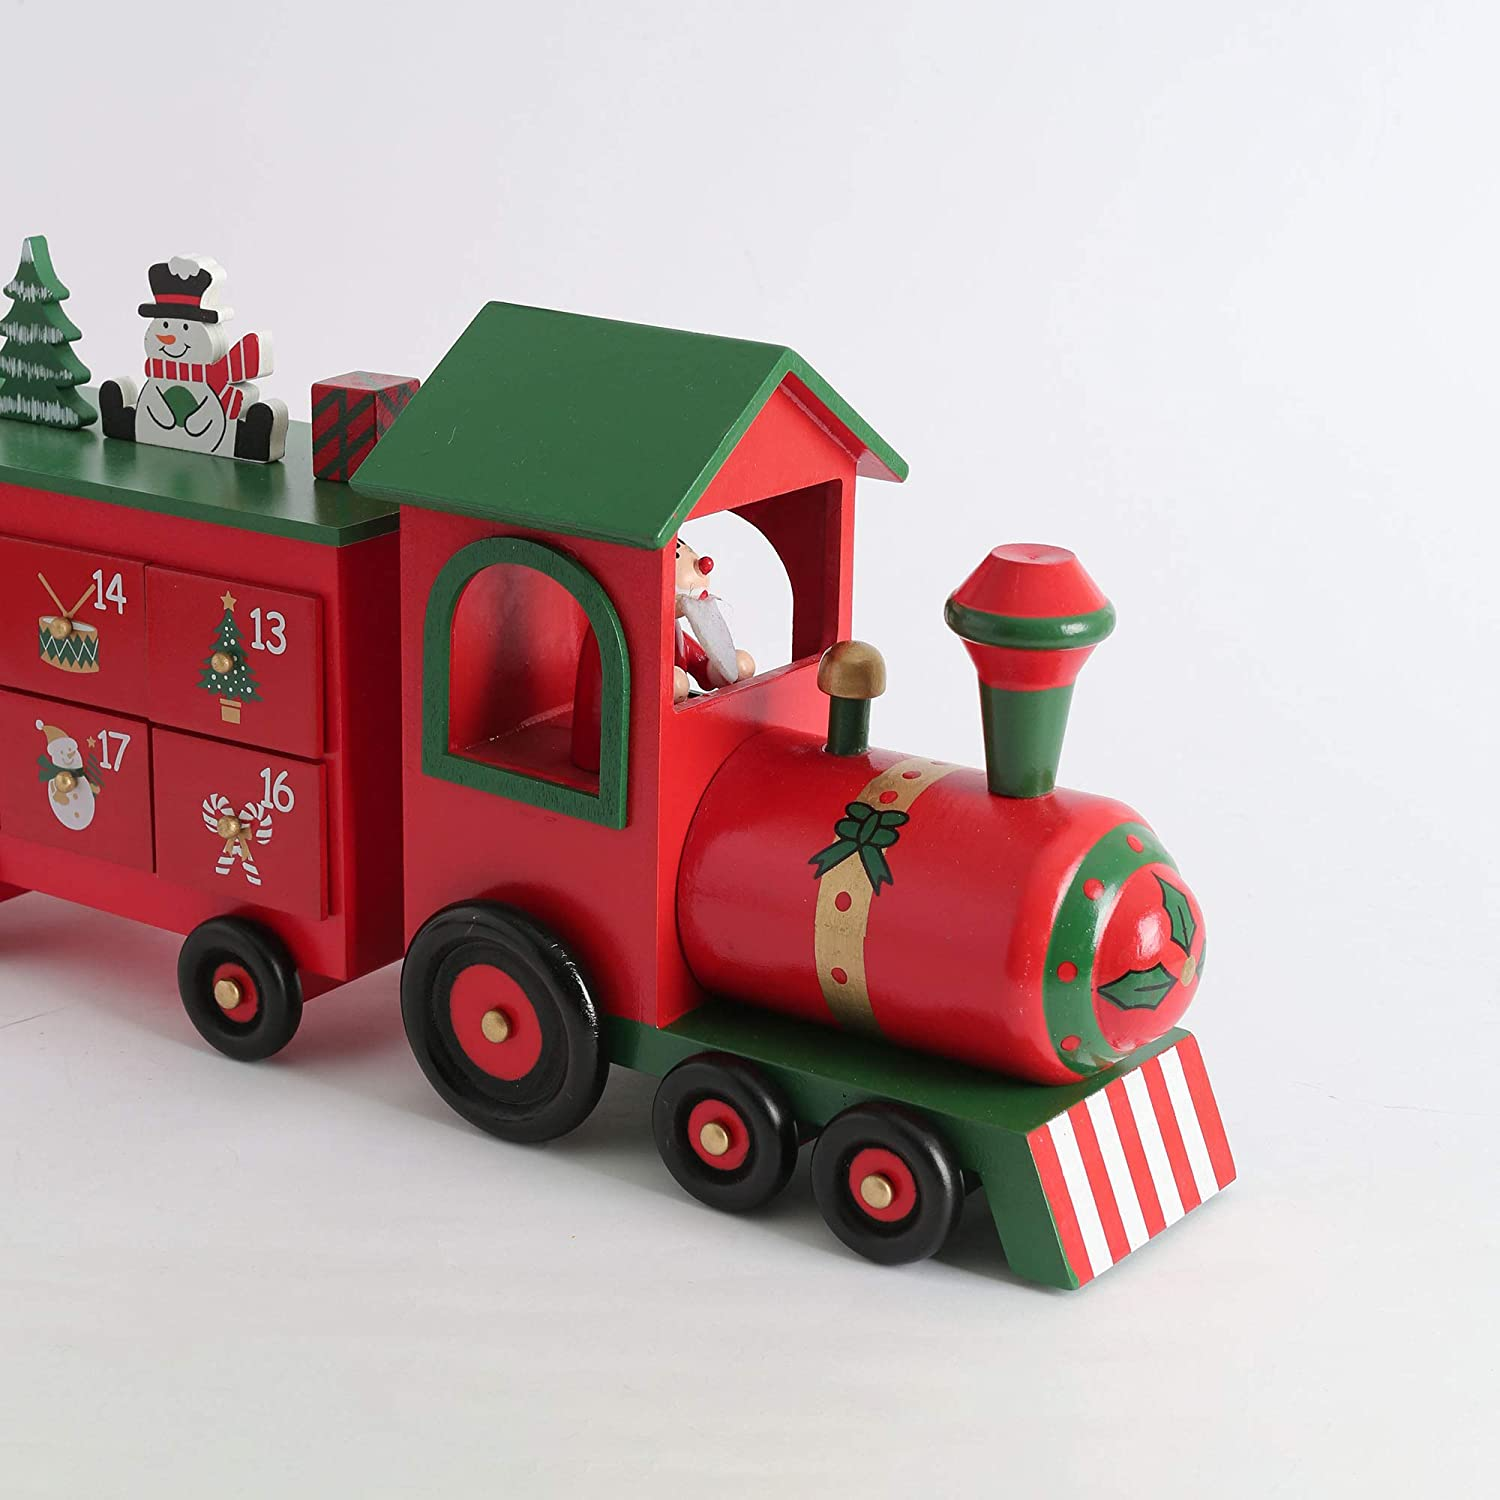 PIONEER-EFFORT 24 Inch Christmas Wooden Advent Calendar Train with 24 Drawers Christmas Countdown Tabletop Decoration Red and Natural